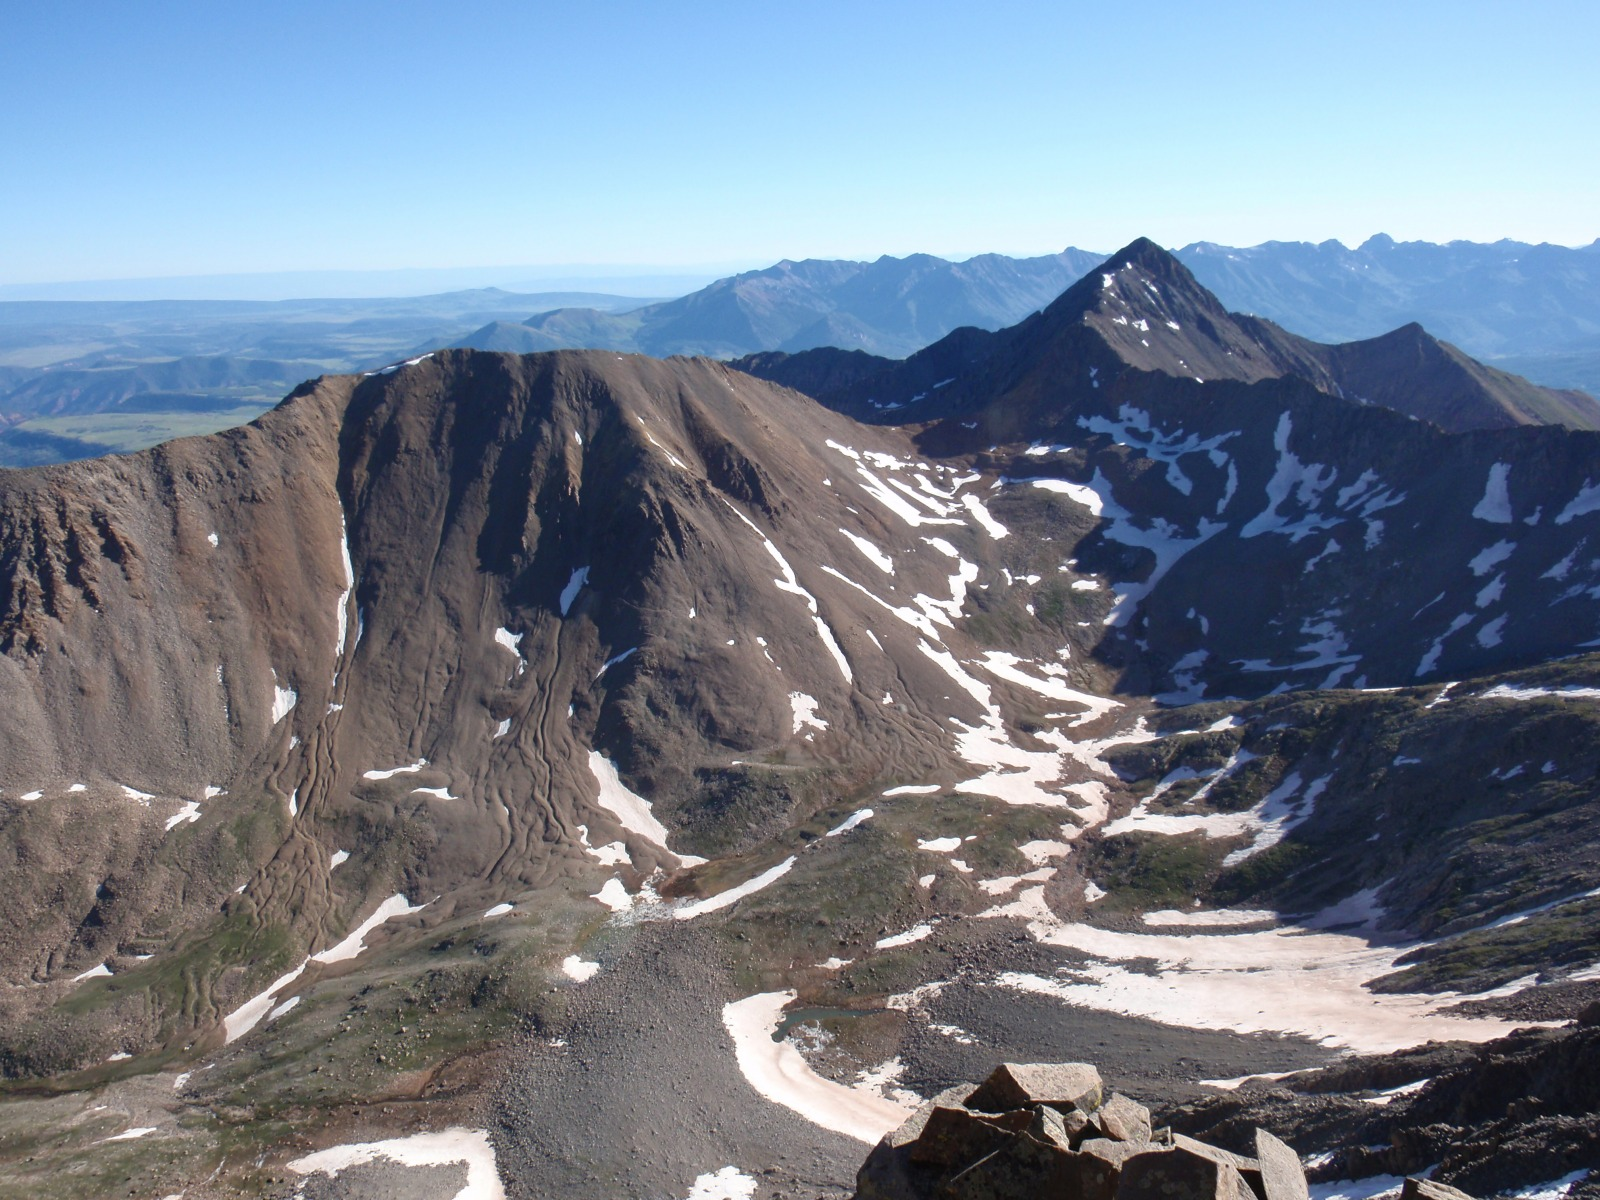 Unnamed 13,540 from the summit of El Diente Peak. Wilson Peak is on the right